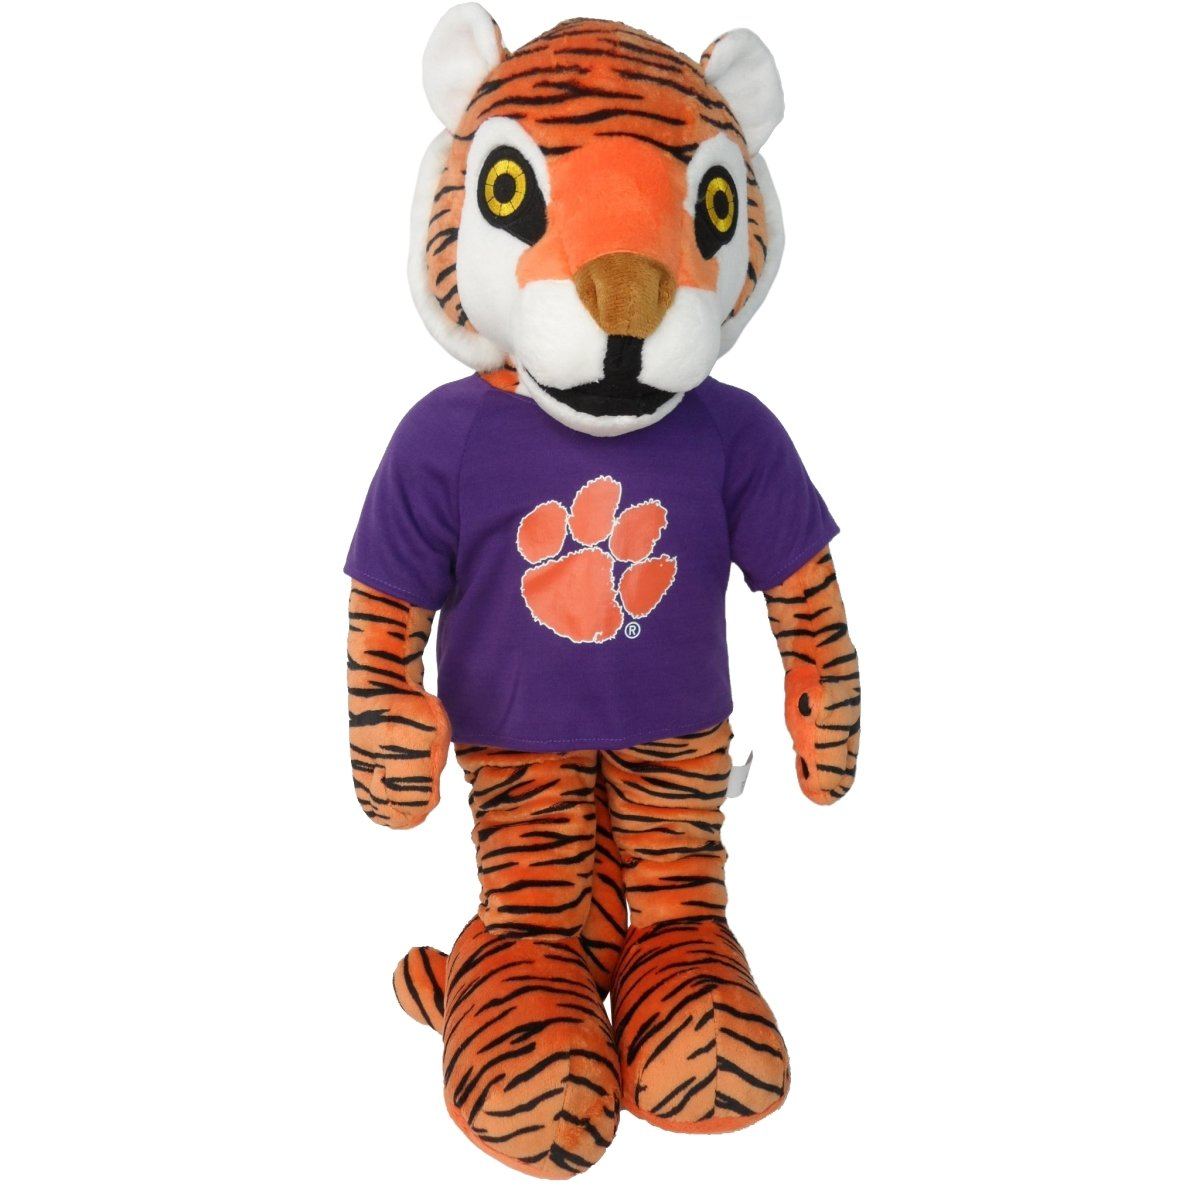 "Plush Tiger With Purple Tee - 22"" - Mr. Knickerbocker"